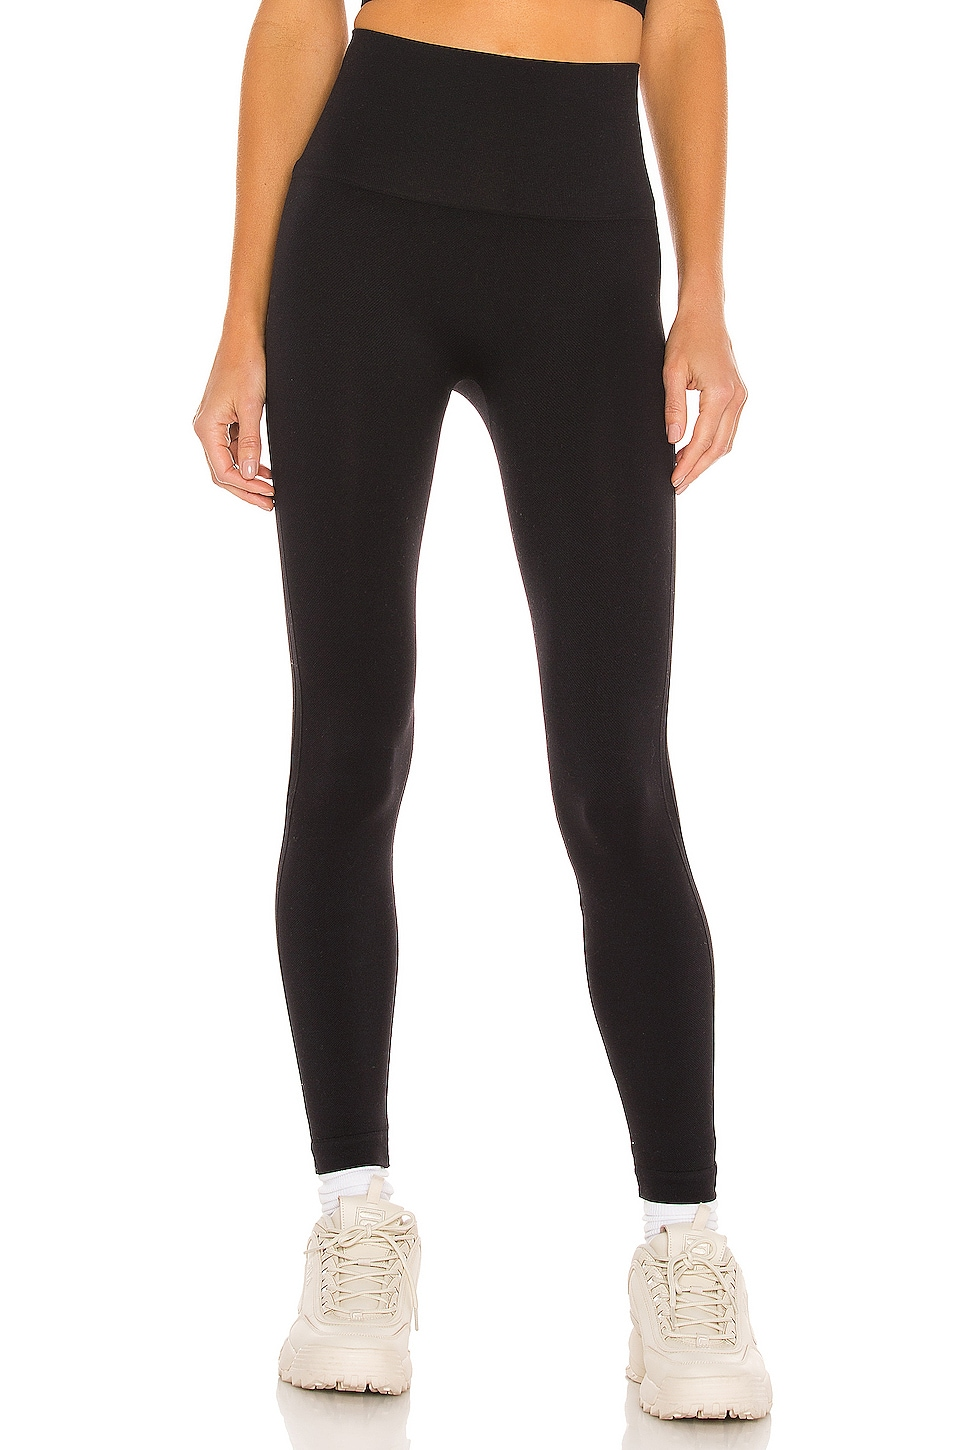 Look At Me Now Legging             SPANX                                                                                                       CA$ 90.42 5